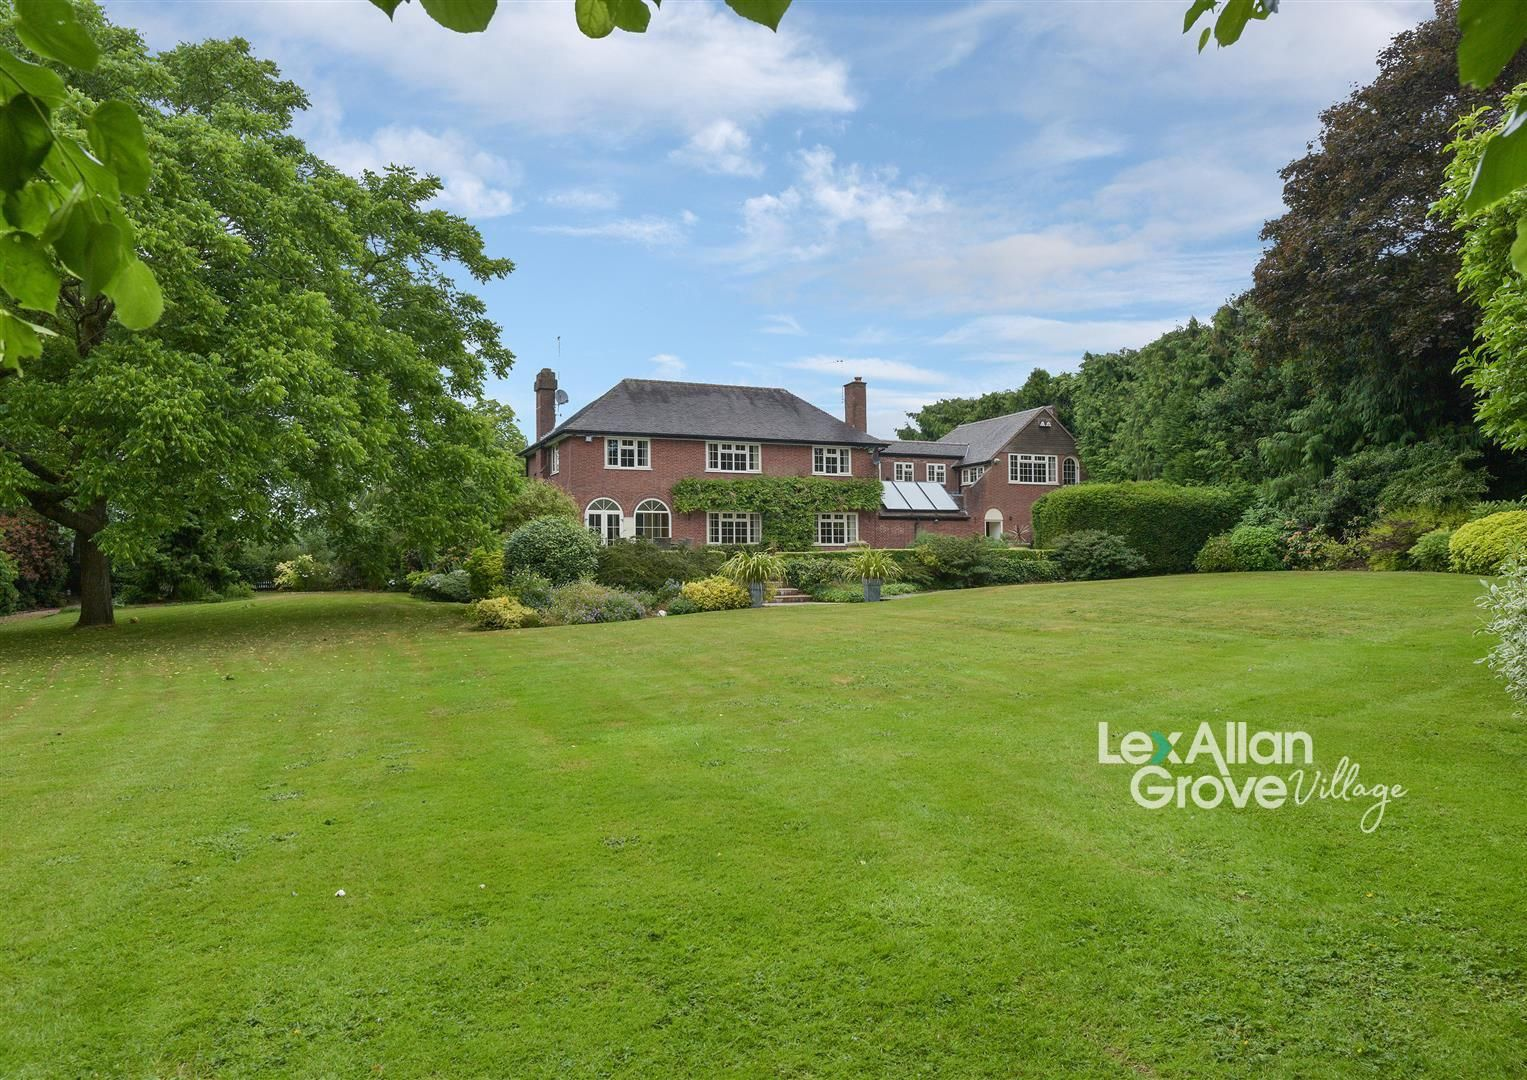 5 bed detached for sale - Property Image 1